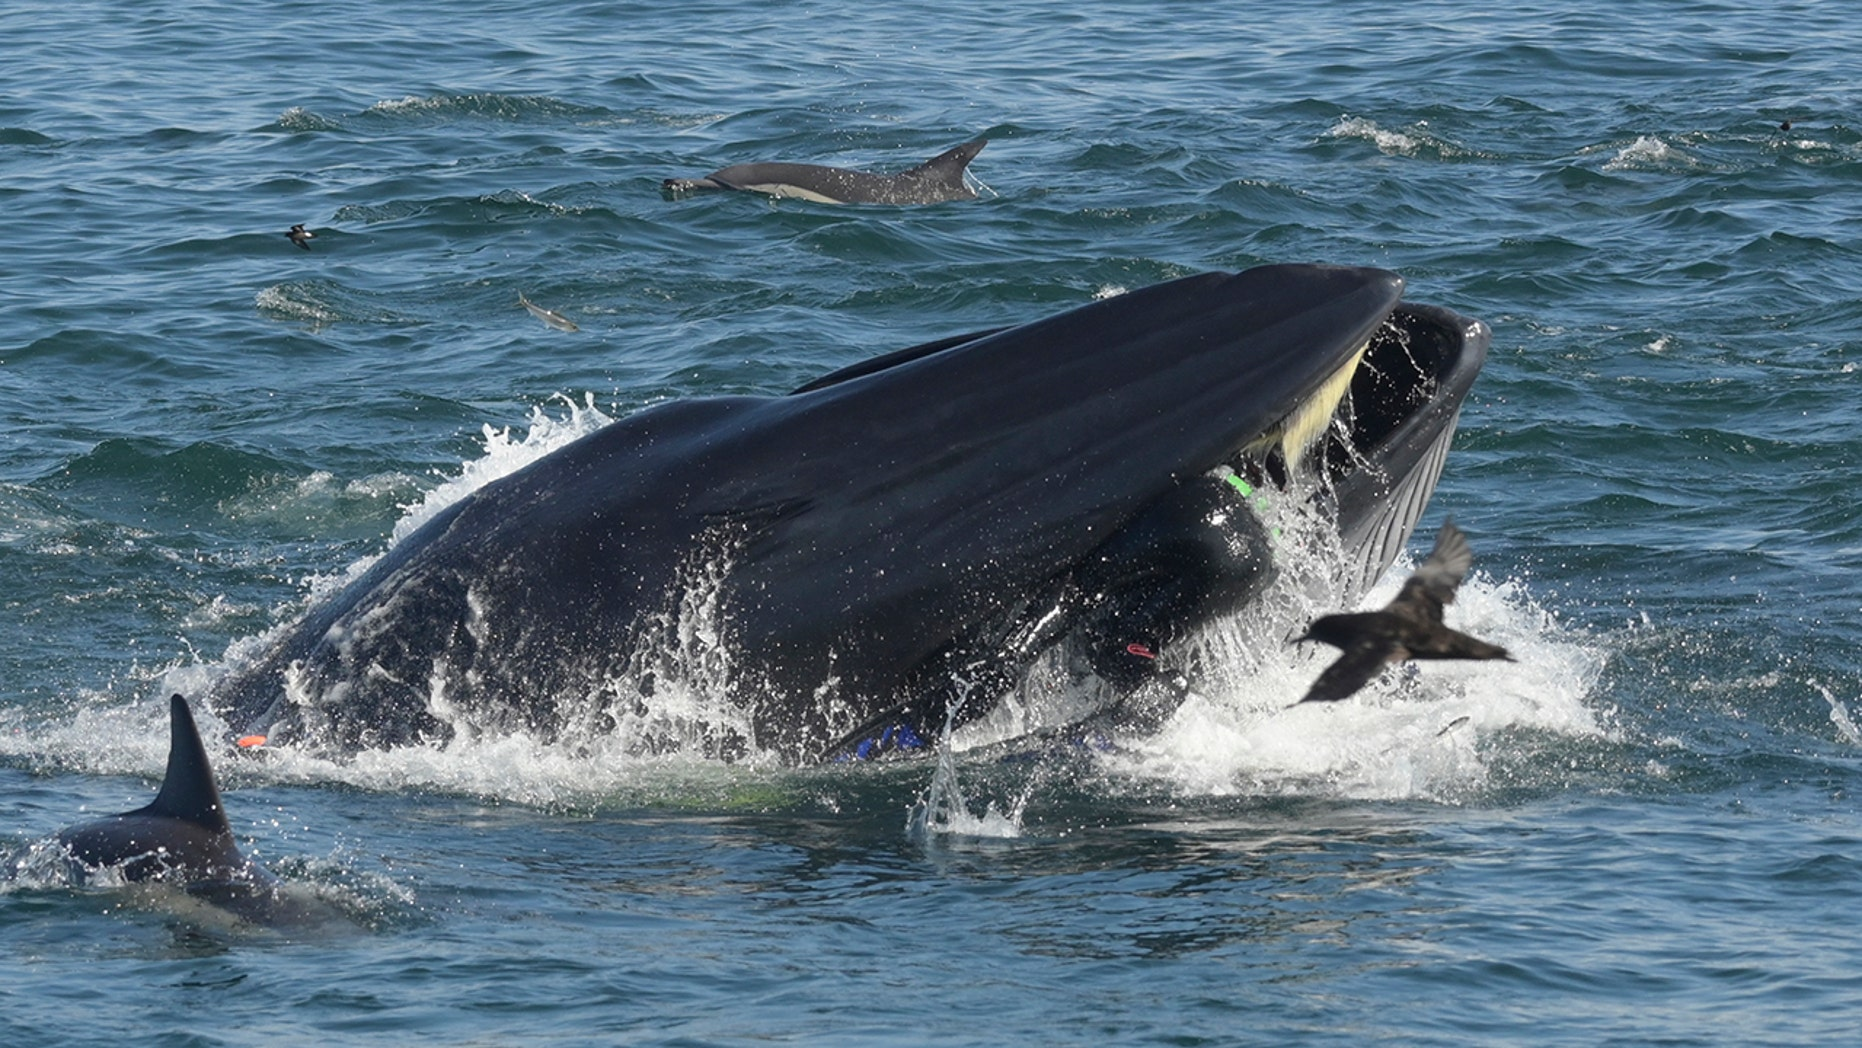 Rainer Schimpf can be seen in the mouth of the Bryde's Whale in Port Elizabeth, South Africa in February.